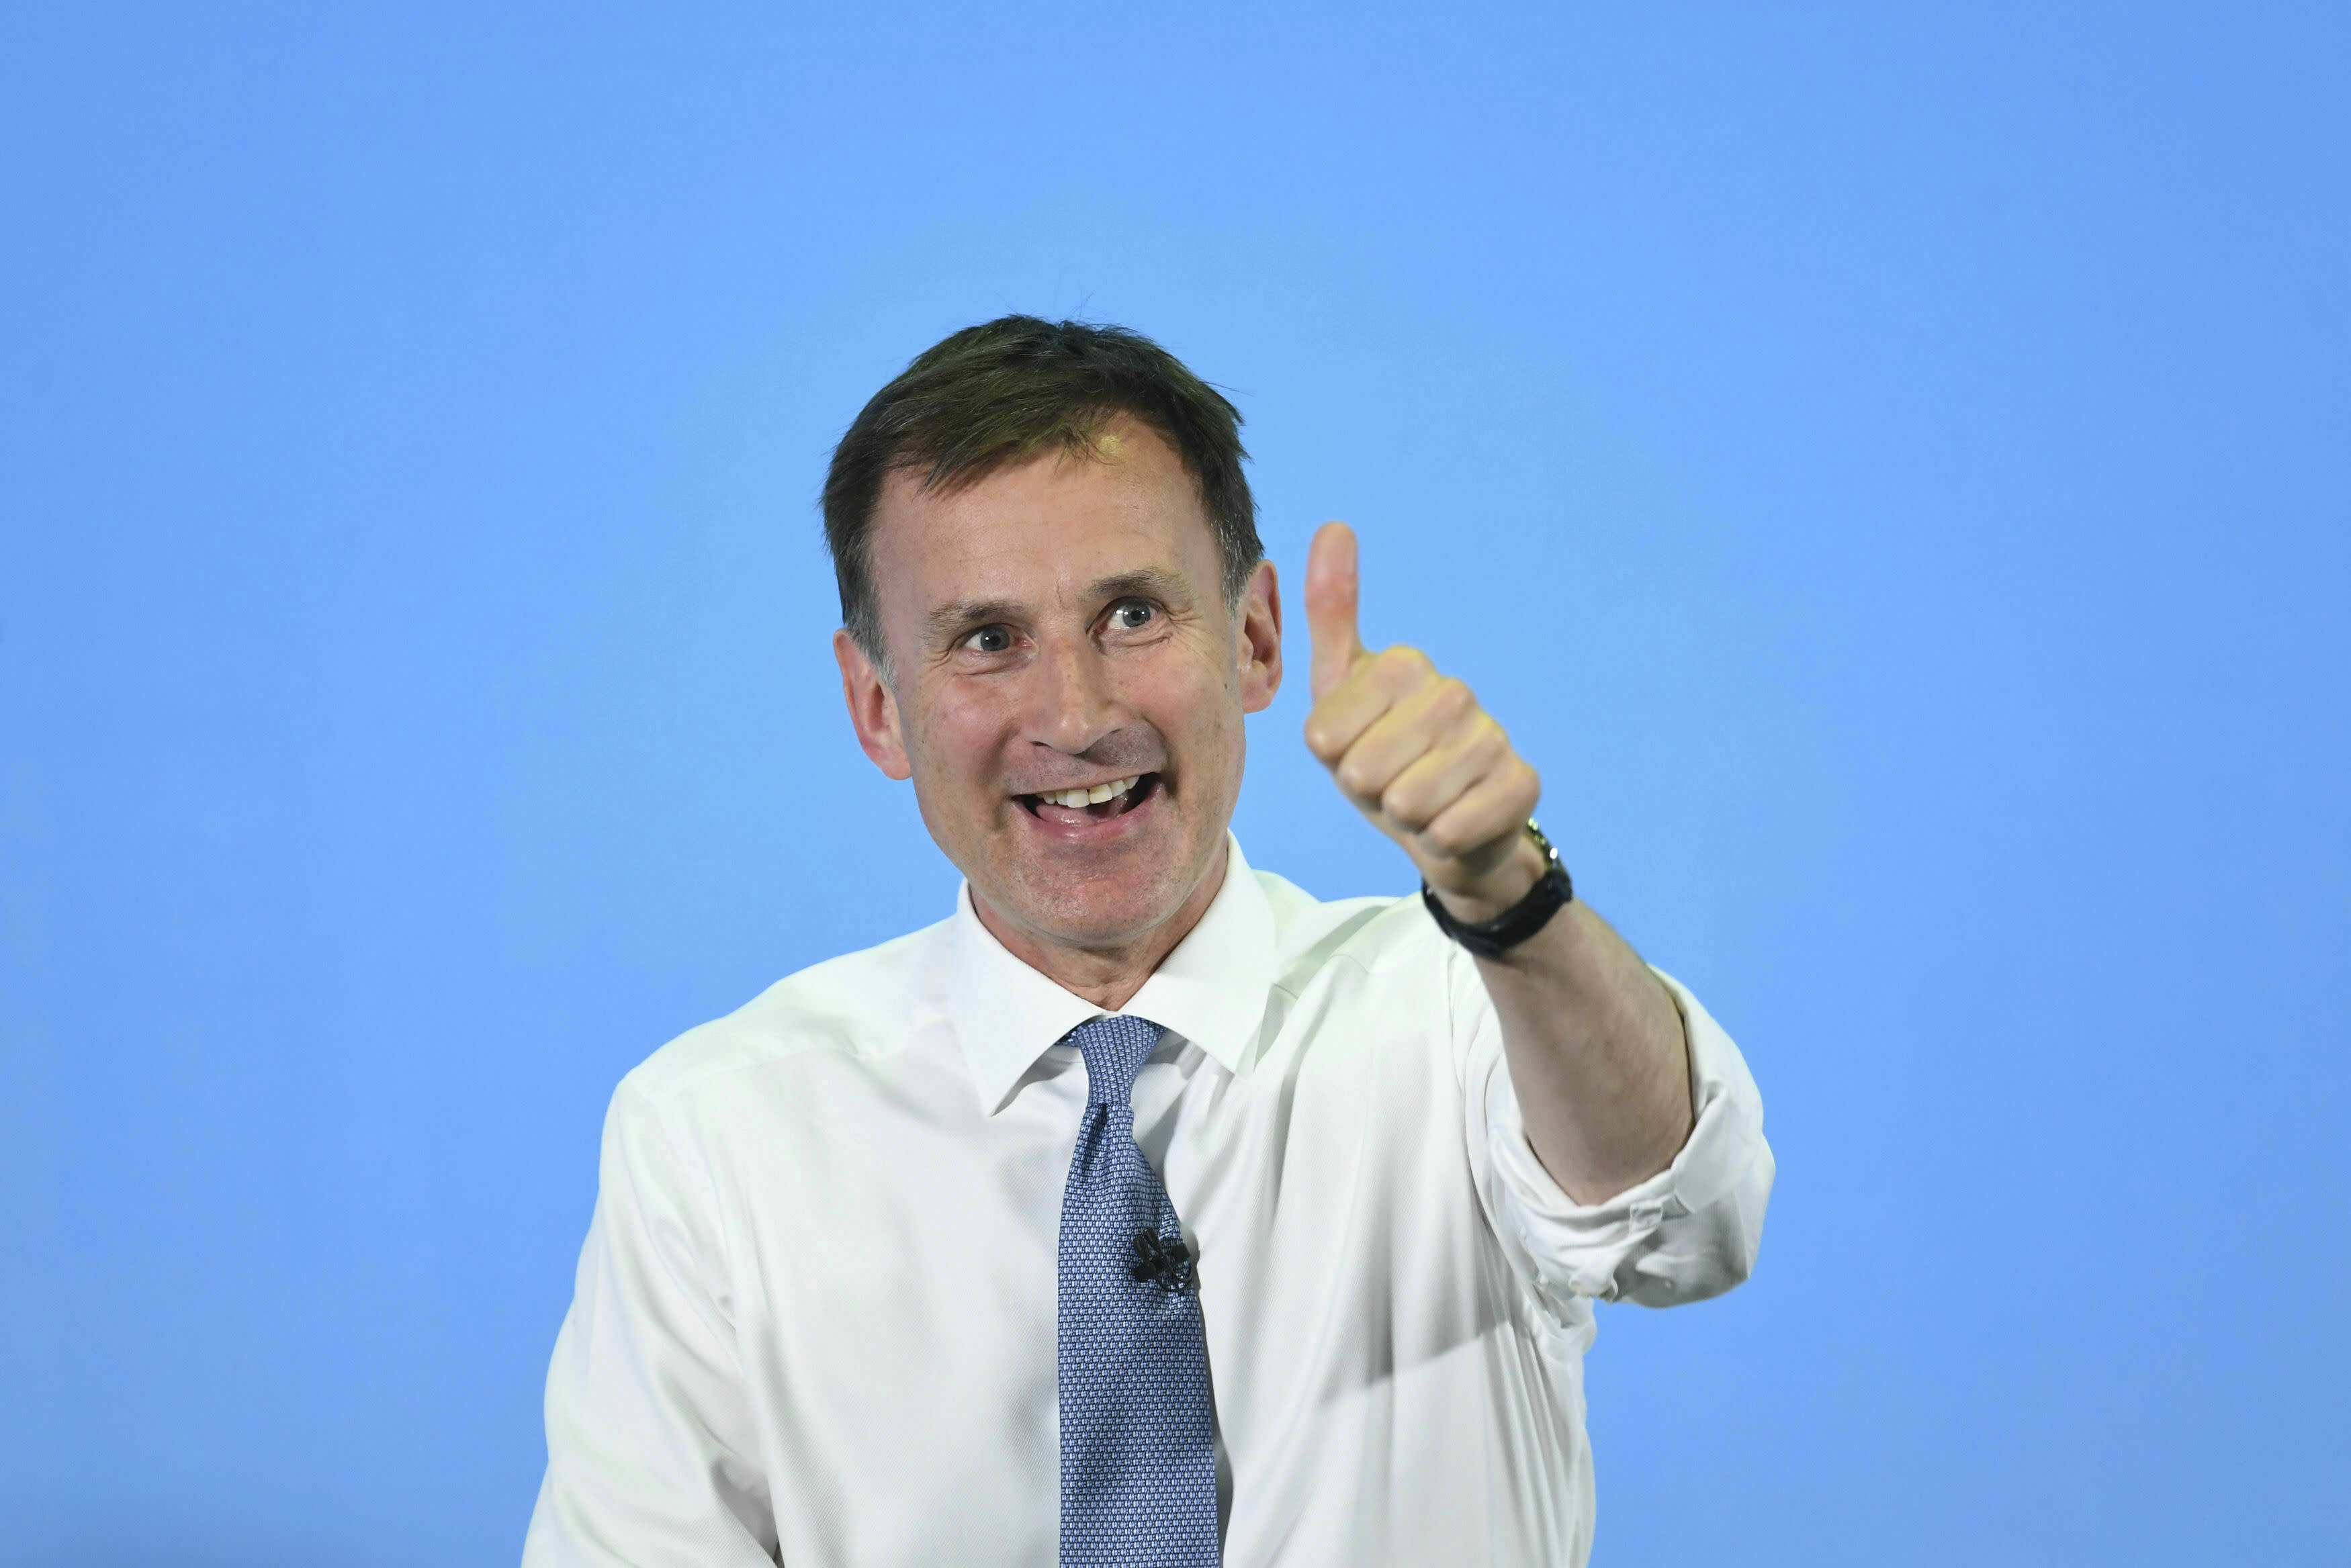 Conservative Party leadership candidate Jeremy Hunt during a Tory leadership hustings in Colchester, England, Saturday, July 13, 2019. (Joe Giddens/PA via AP)